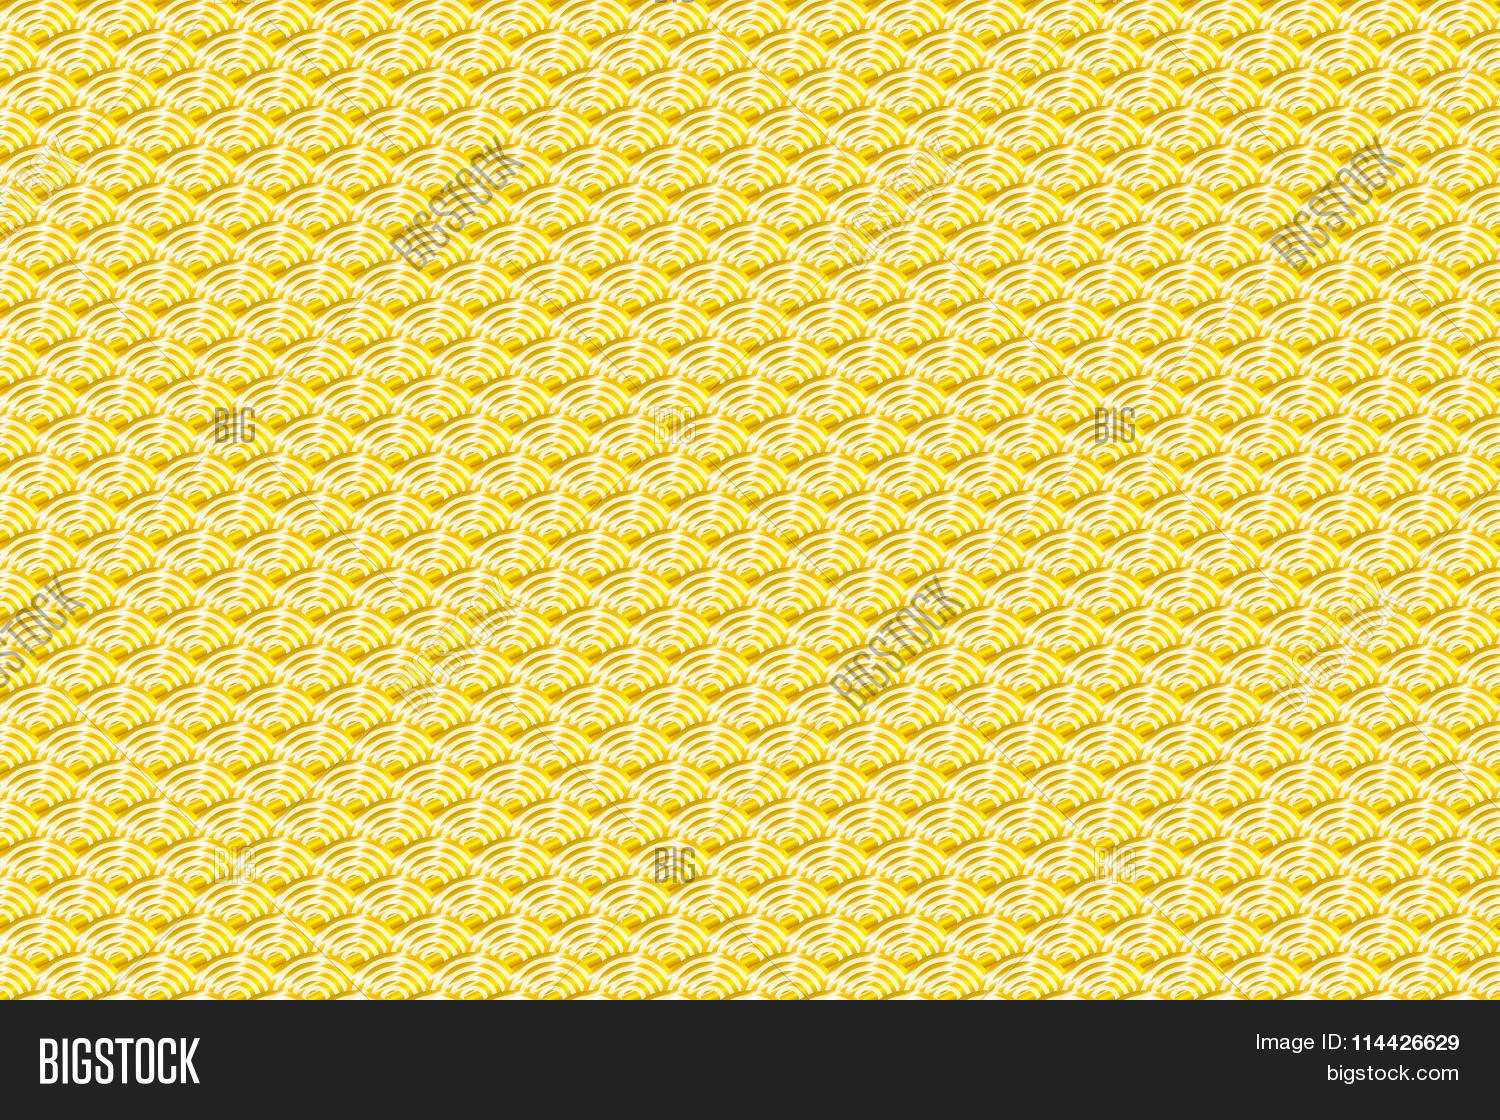 Seamless chinese pattern lucky vector photo bigstock seamless chinese pattern of lucky symbols of ruyi and lu meaning wealth auspiciousness and buycottarizona